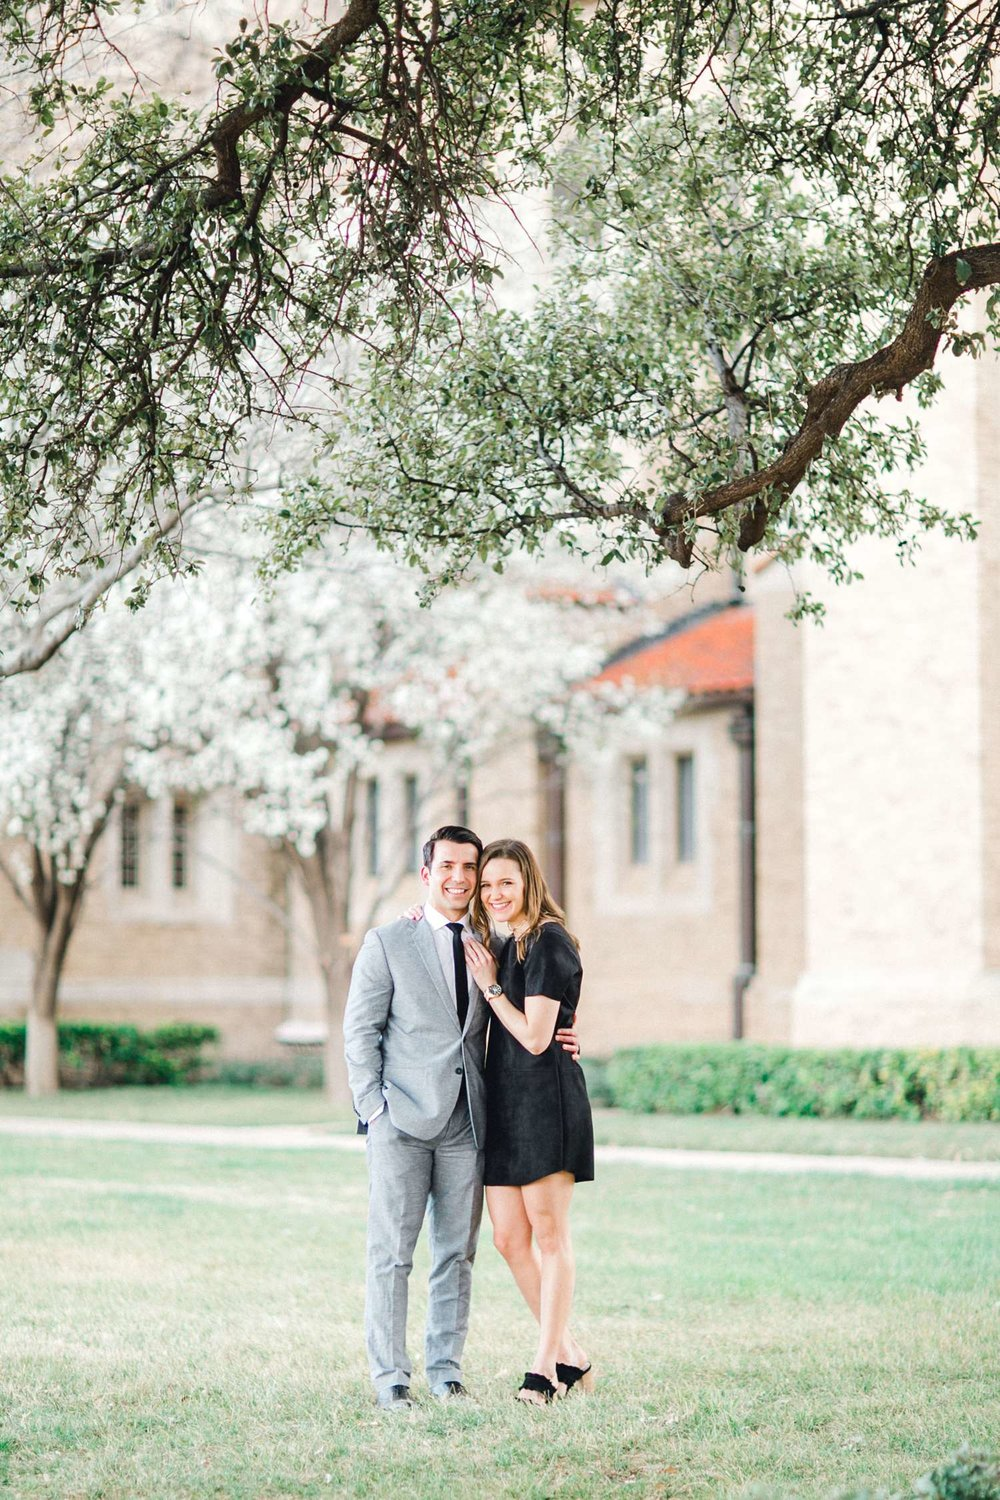 CAROLINE+CHRISTIAN+ALLEEJ+ENGAGEMENTS+LUBBOCK+WEDDING+PHOTOGRAPHER+FIRST+BAPTIST+CHURCH_0031.jpg